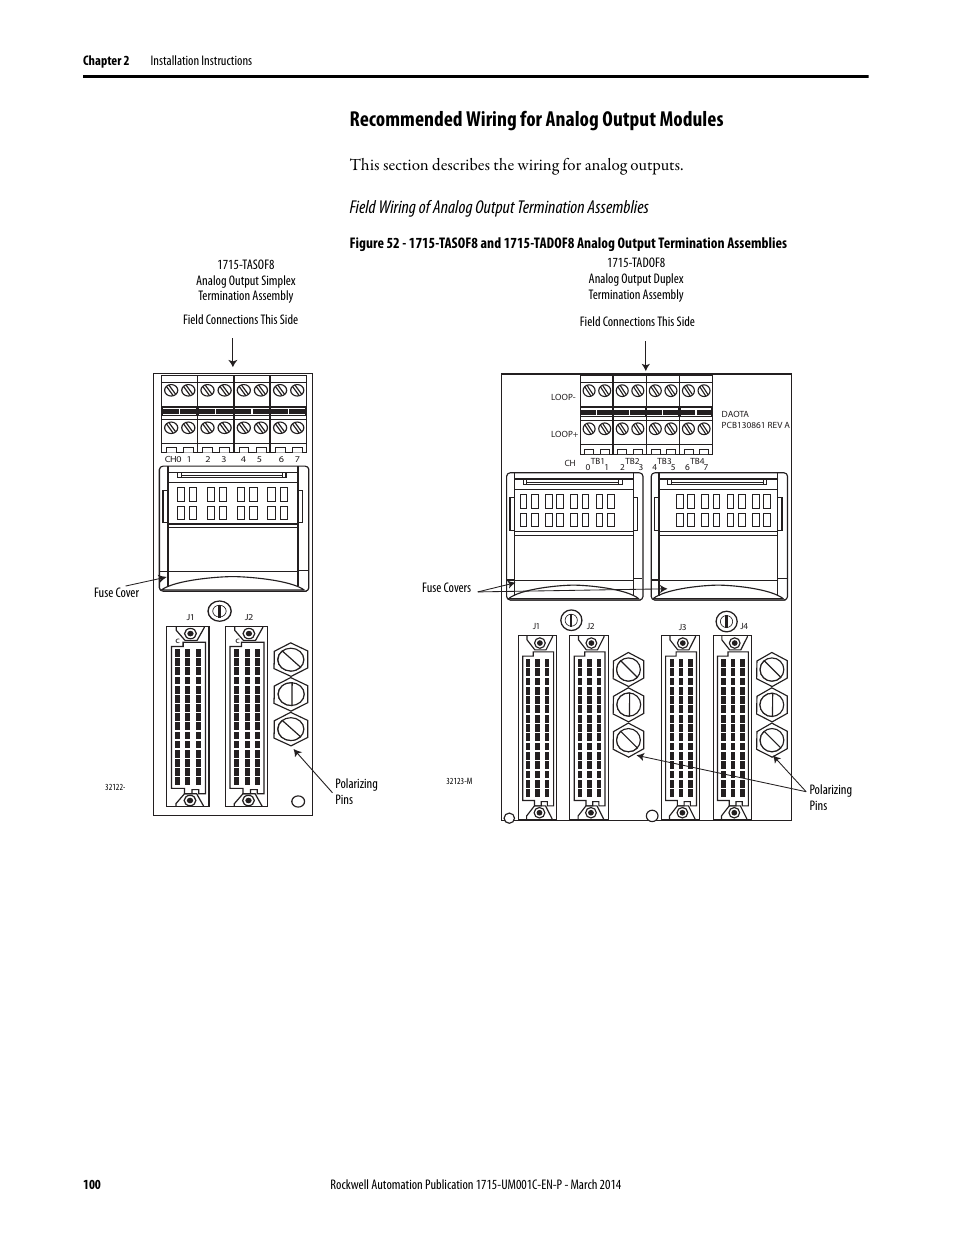 Recommended wiring for analog output modules | Rockwell Automation 1715-OF8I Redundant I/O System User Manual User Manual | Page 100 / 324